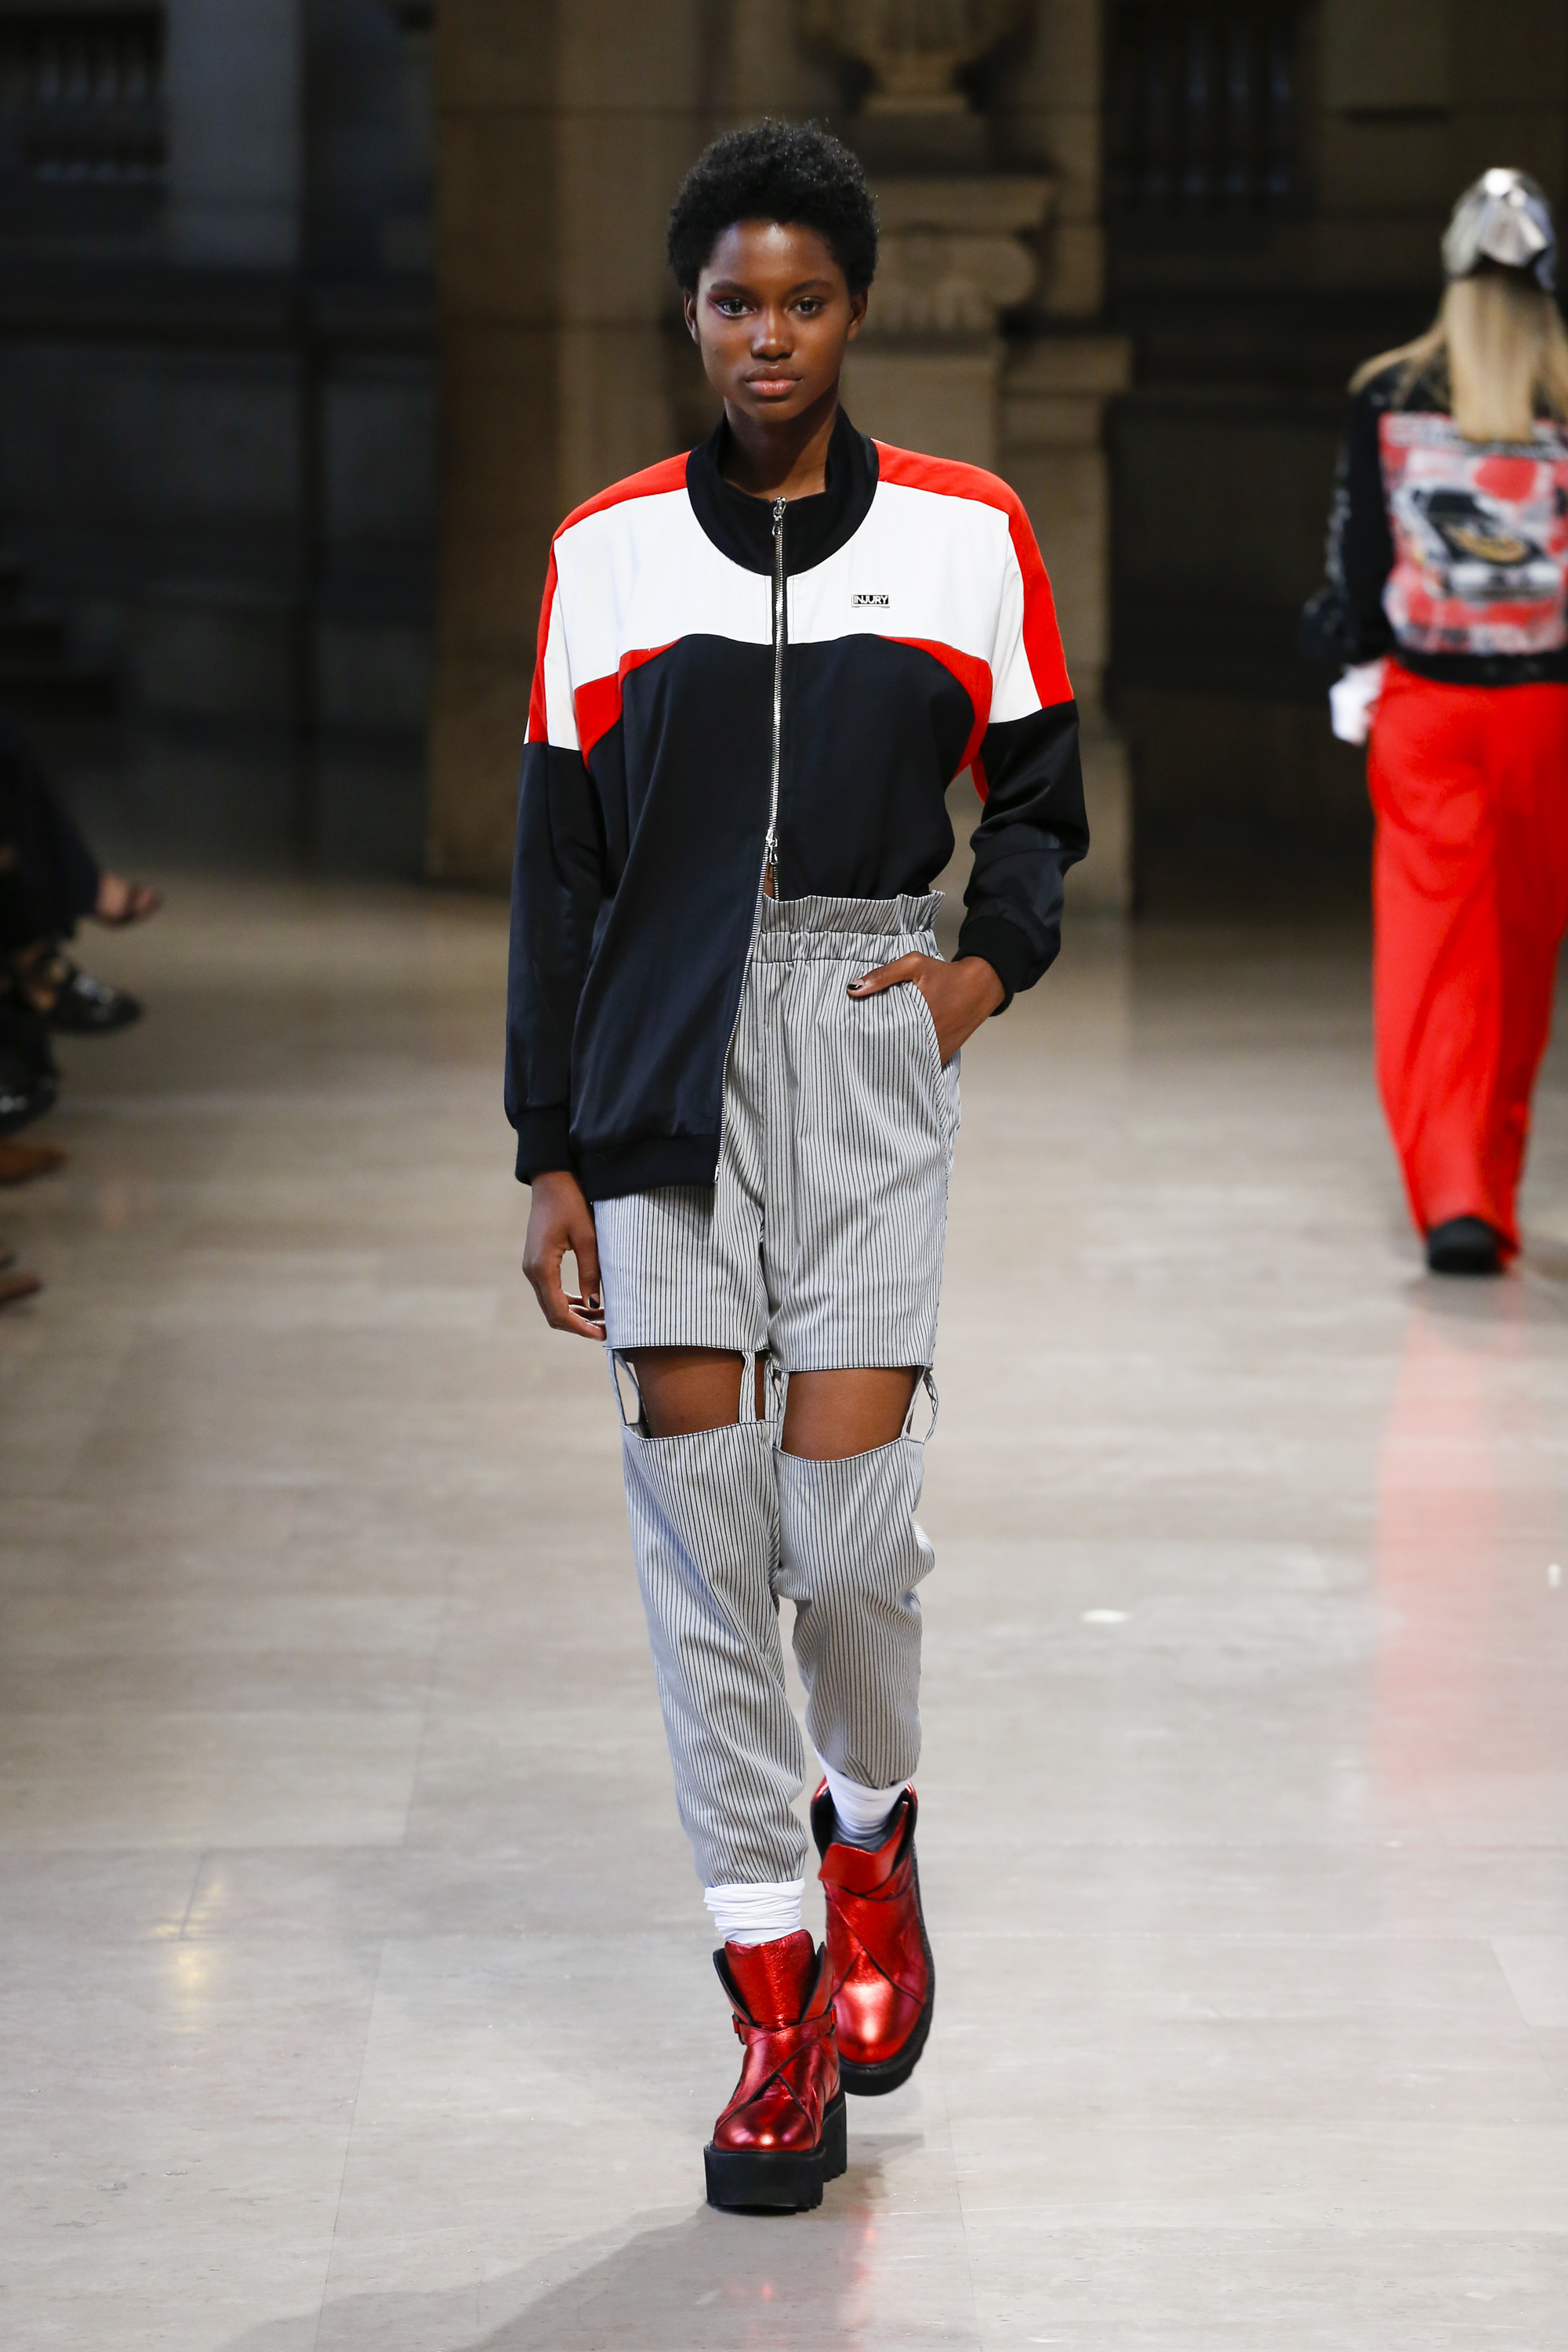 INJURY-SS17-LOOK7.jpg